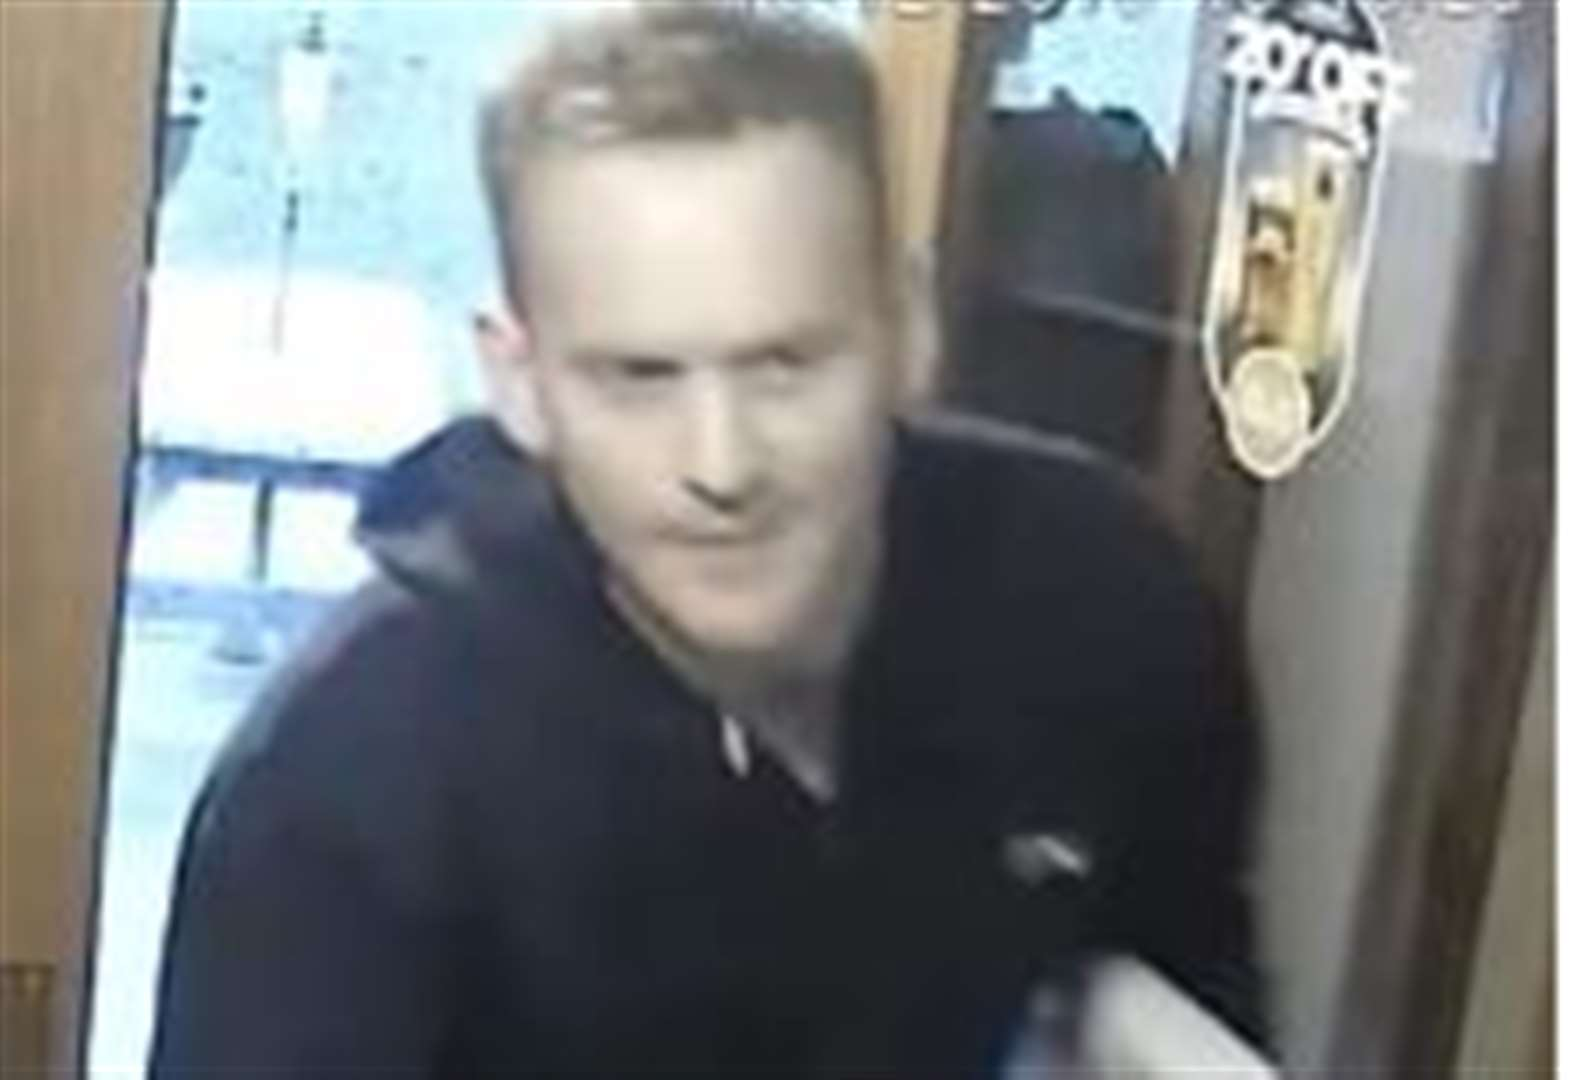 Police renew appeal for information on attempted fraud in Grantham